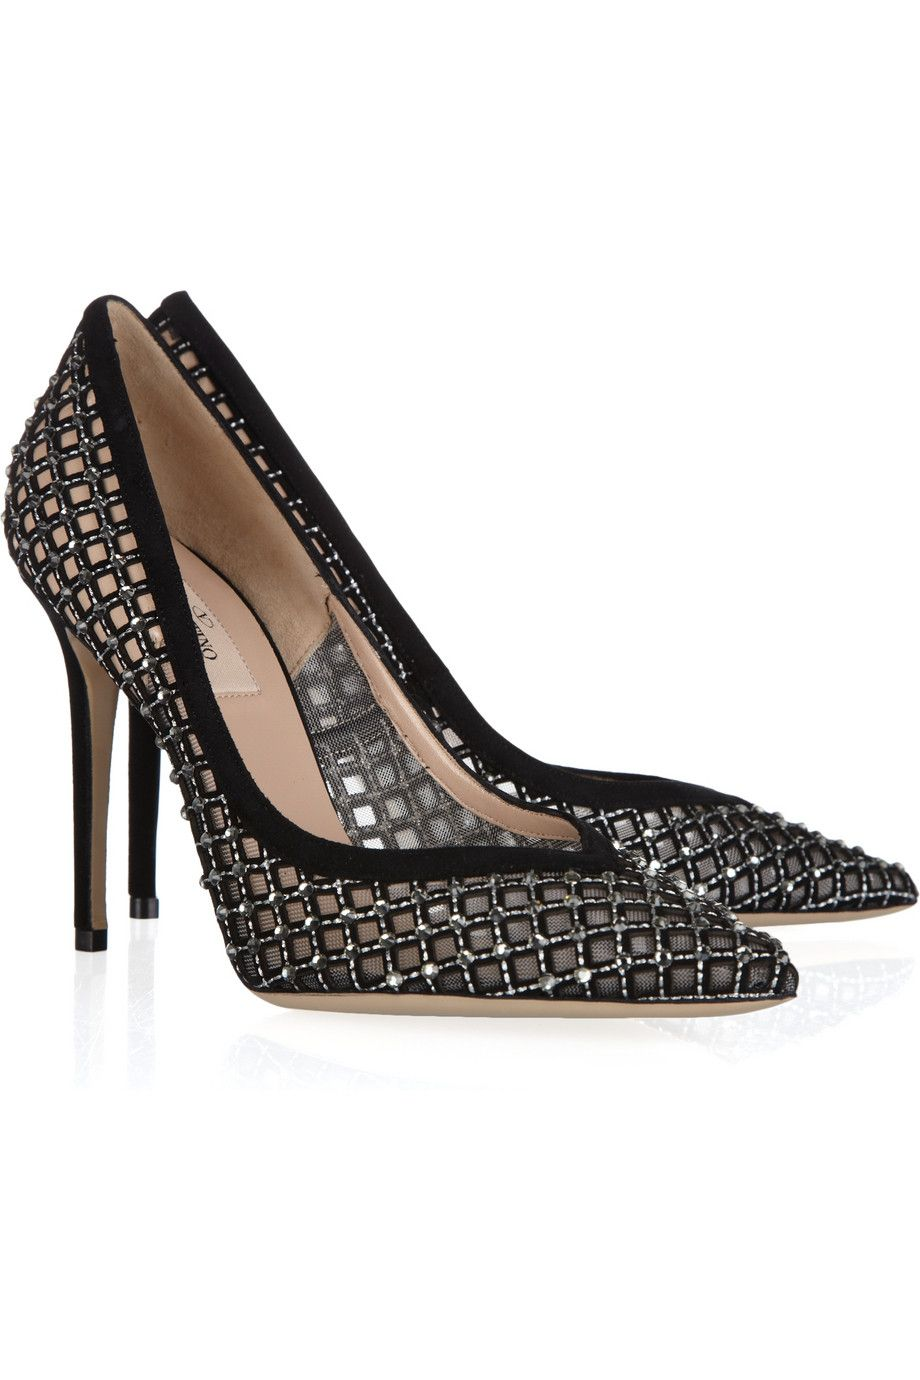 69bfbe91686e Valentino crystal-embellished suede and mesh pumps